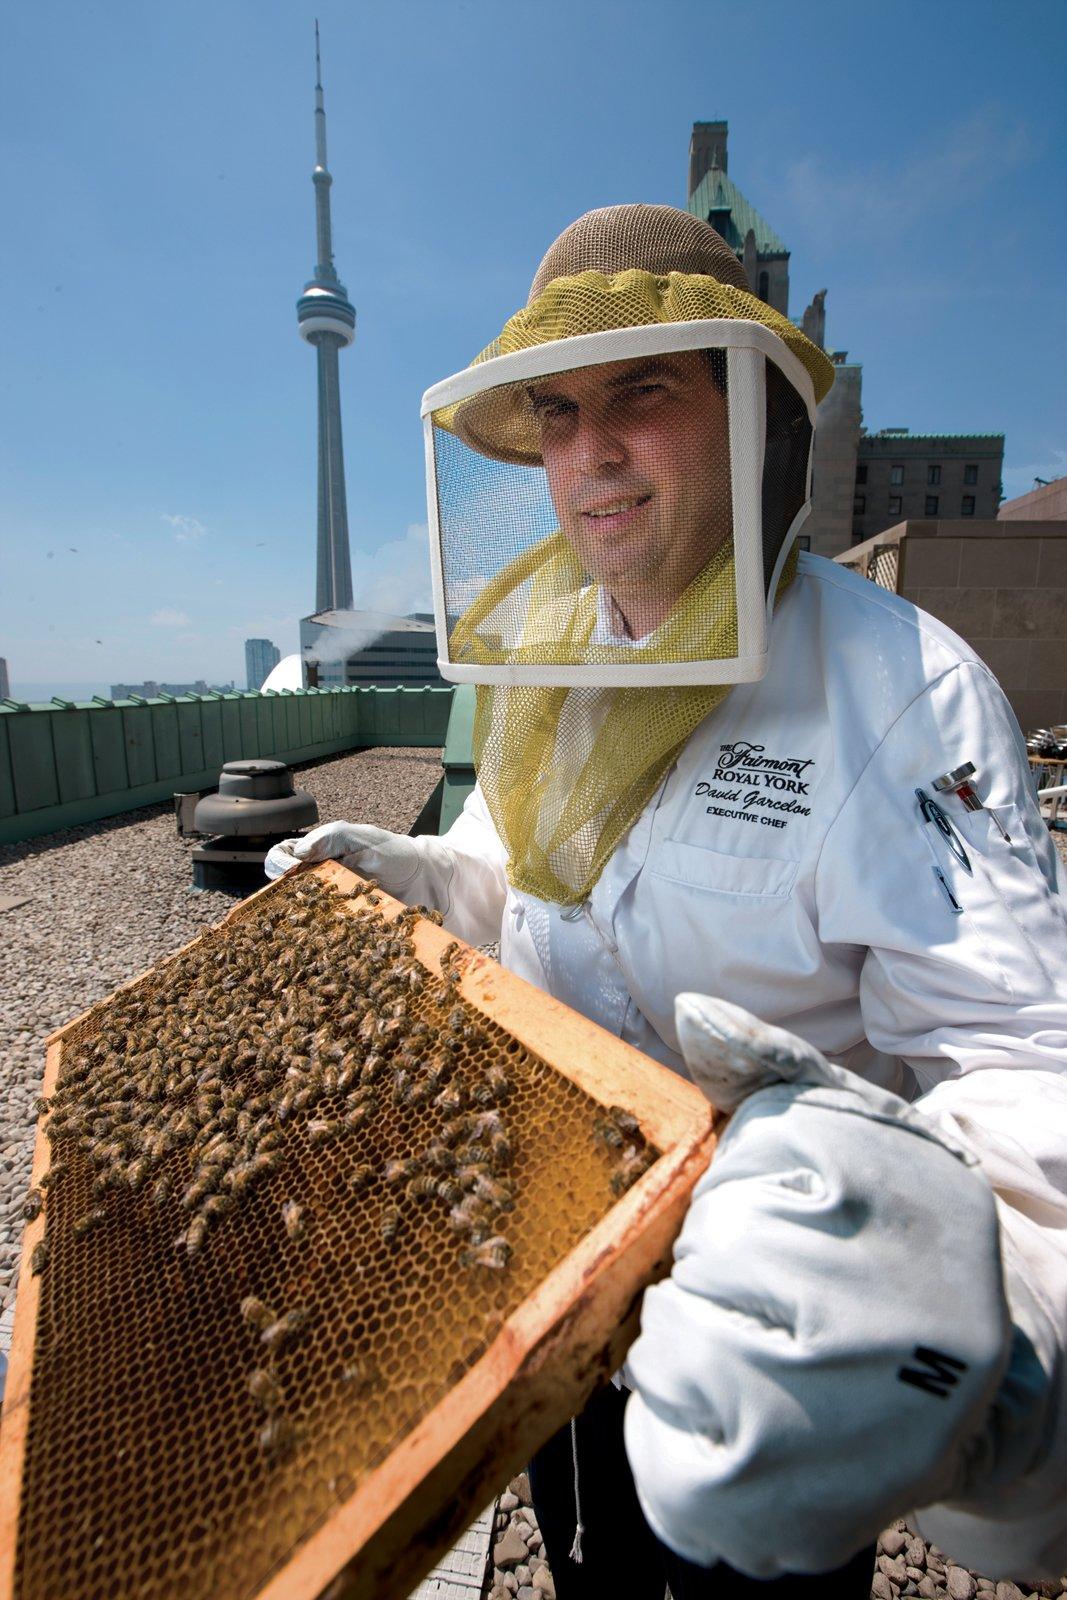 Fairmont Royal York Hotel executive chef David Garcelon takes instruction from beekeepers on the handling of the three new hives on the hotel's roof, just beside the roof-top herb garden. Photograph by Norm Betts.  Photo 1 of 1 in Hive Design